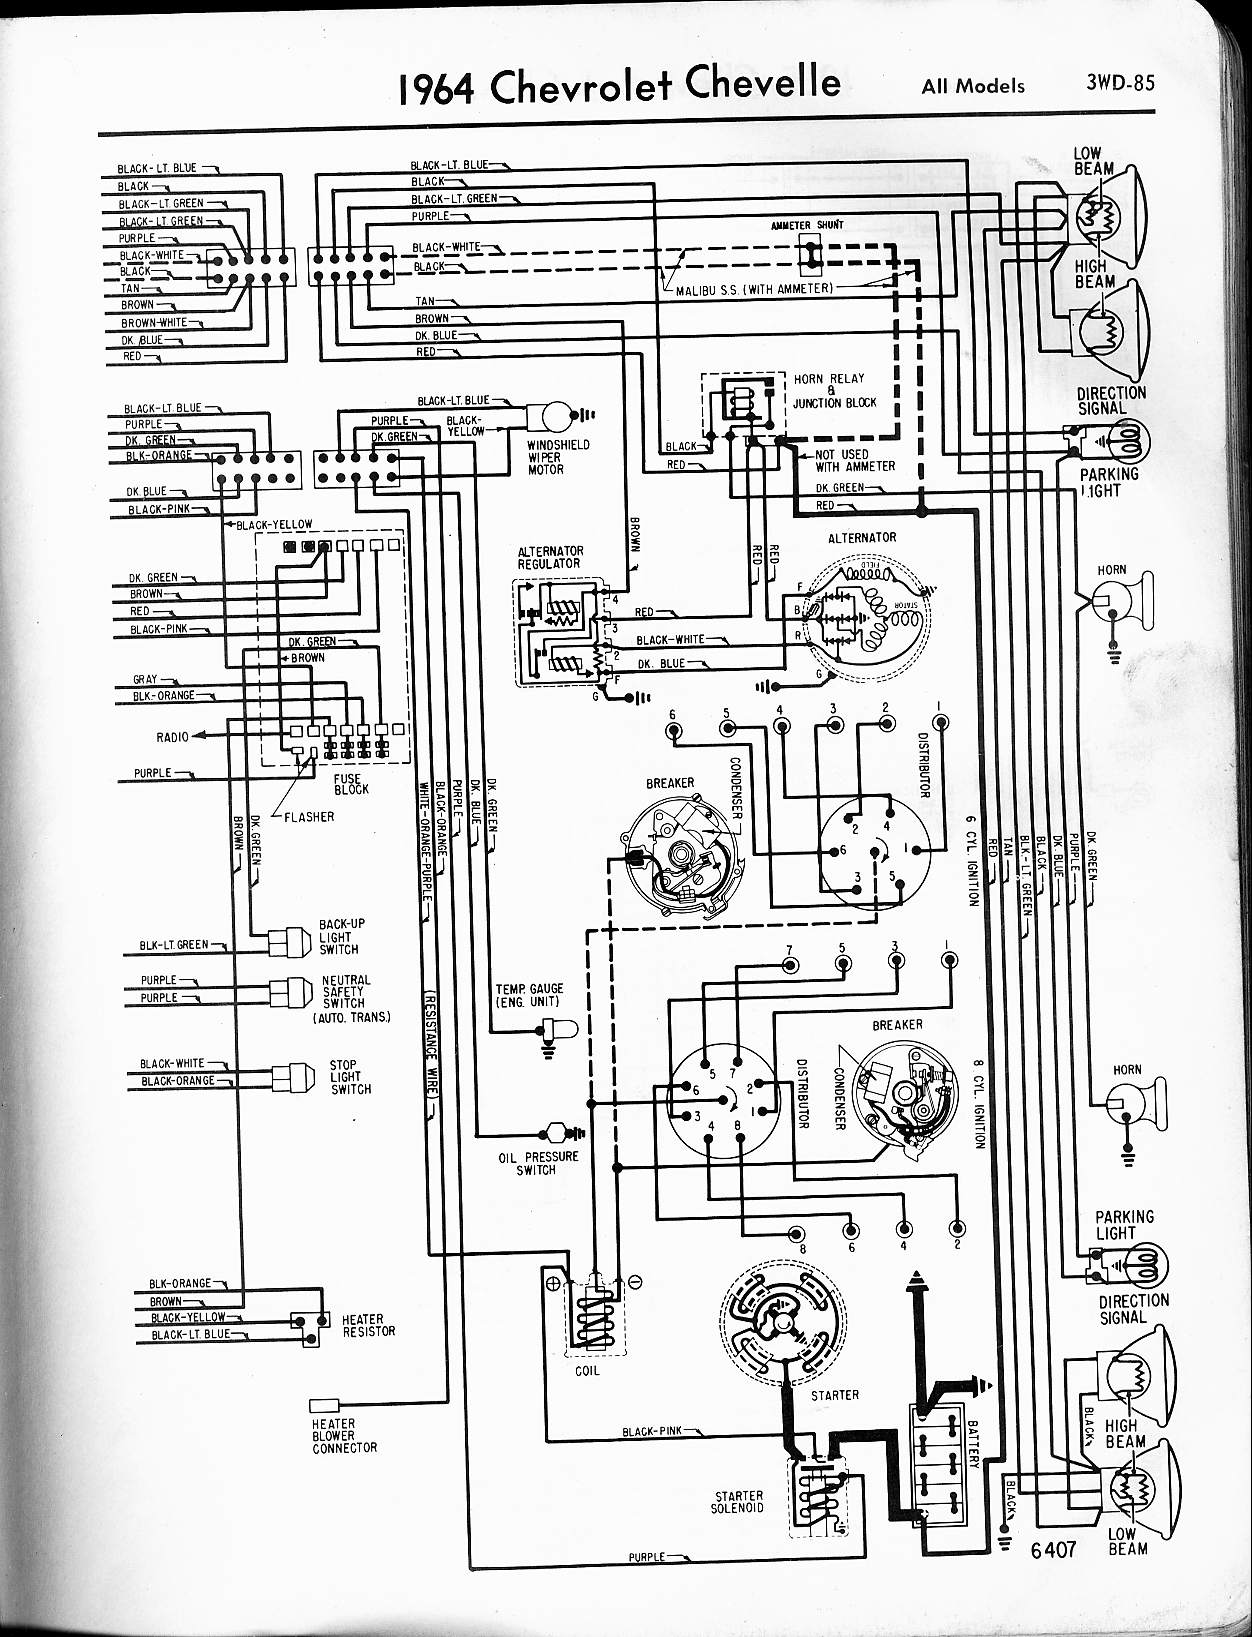 hight resolution of 65 pontiac wiring diagram wiring diagram65 gto wiring harness free download diagram schematic use wiring65 pontiac